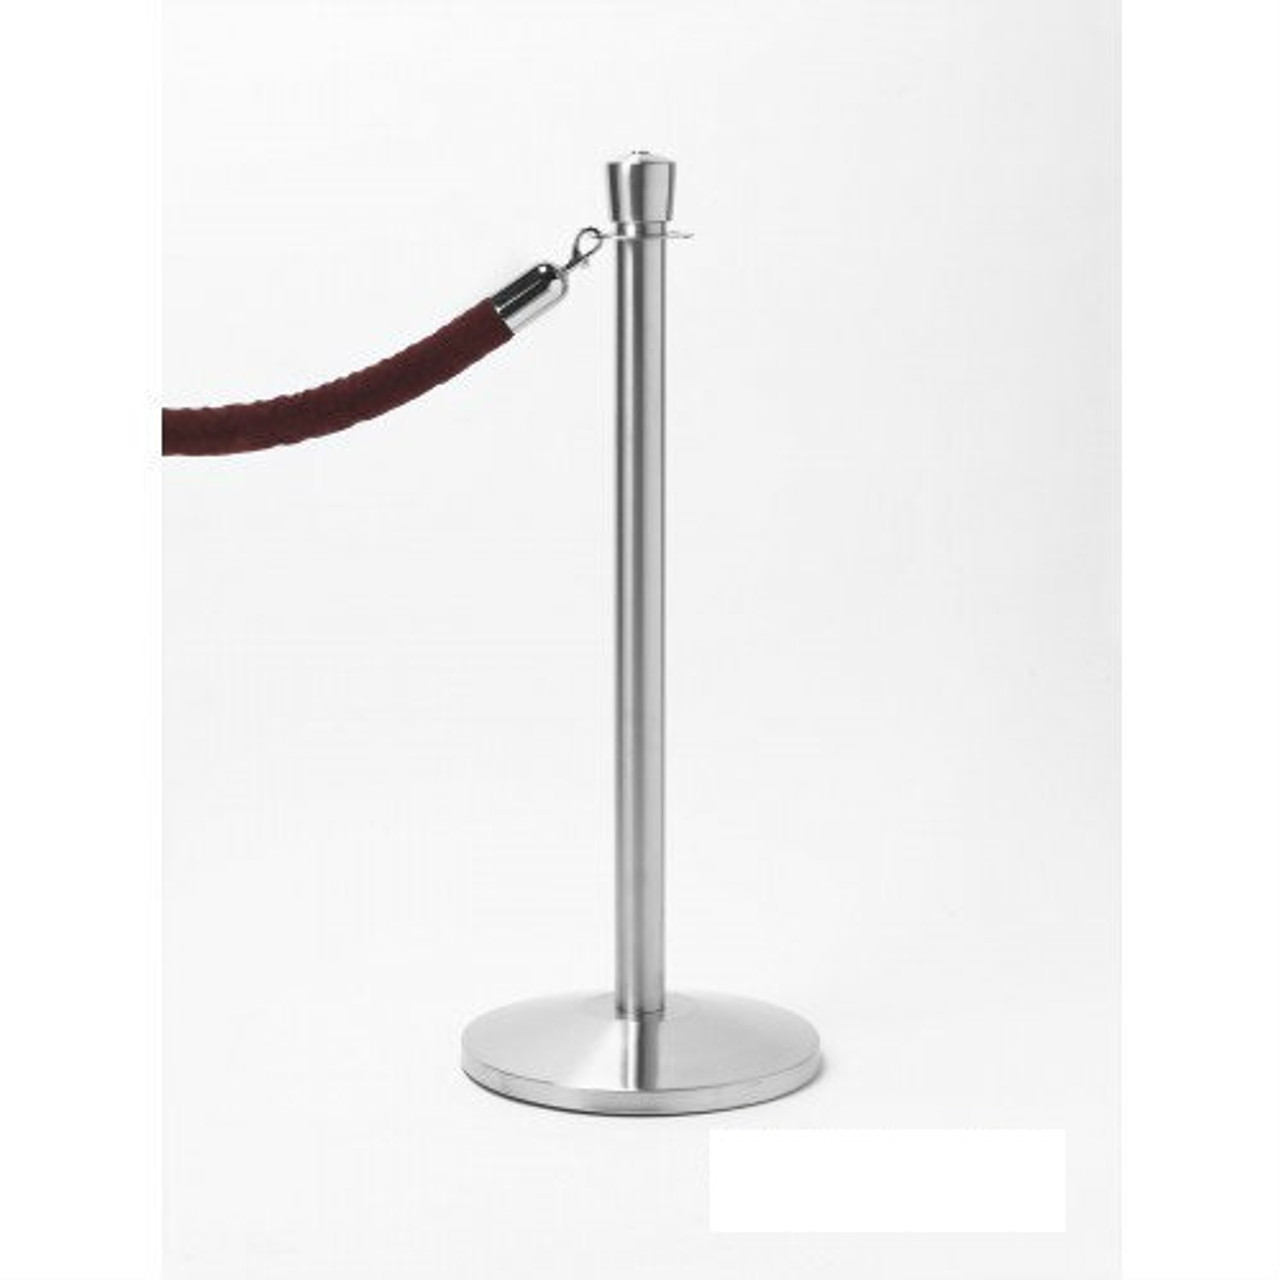 portable post, post and rope, metal stanchion, crowd control